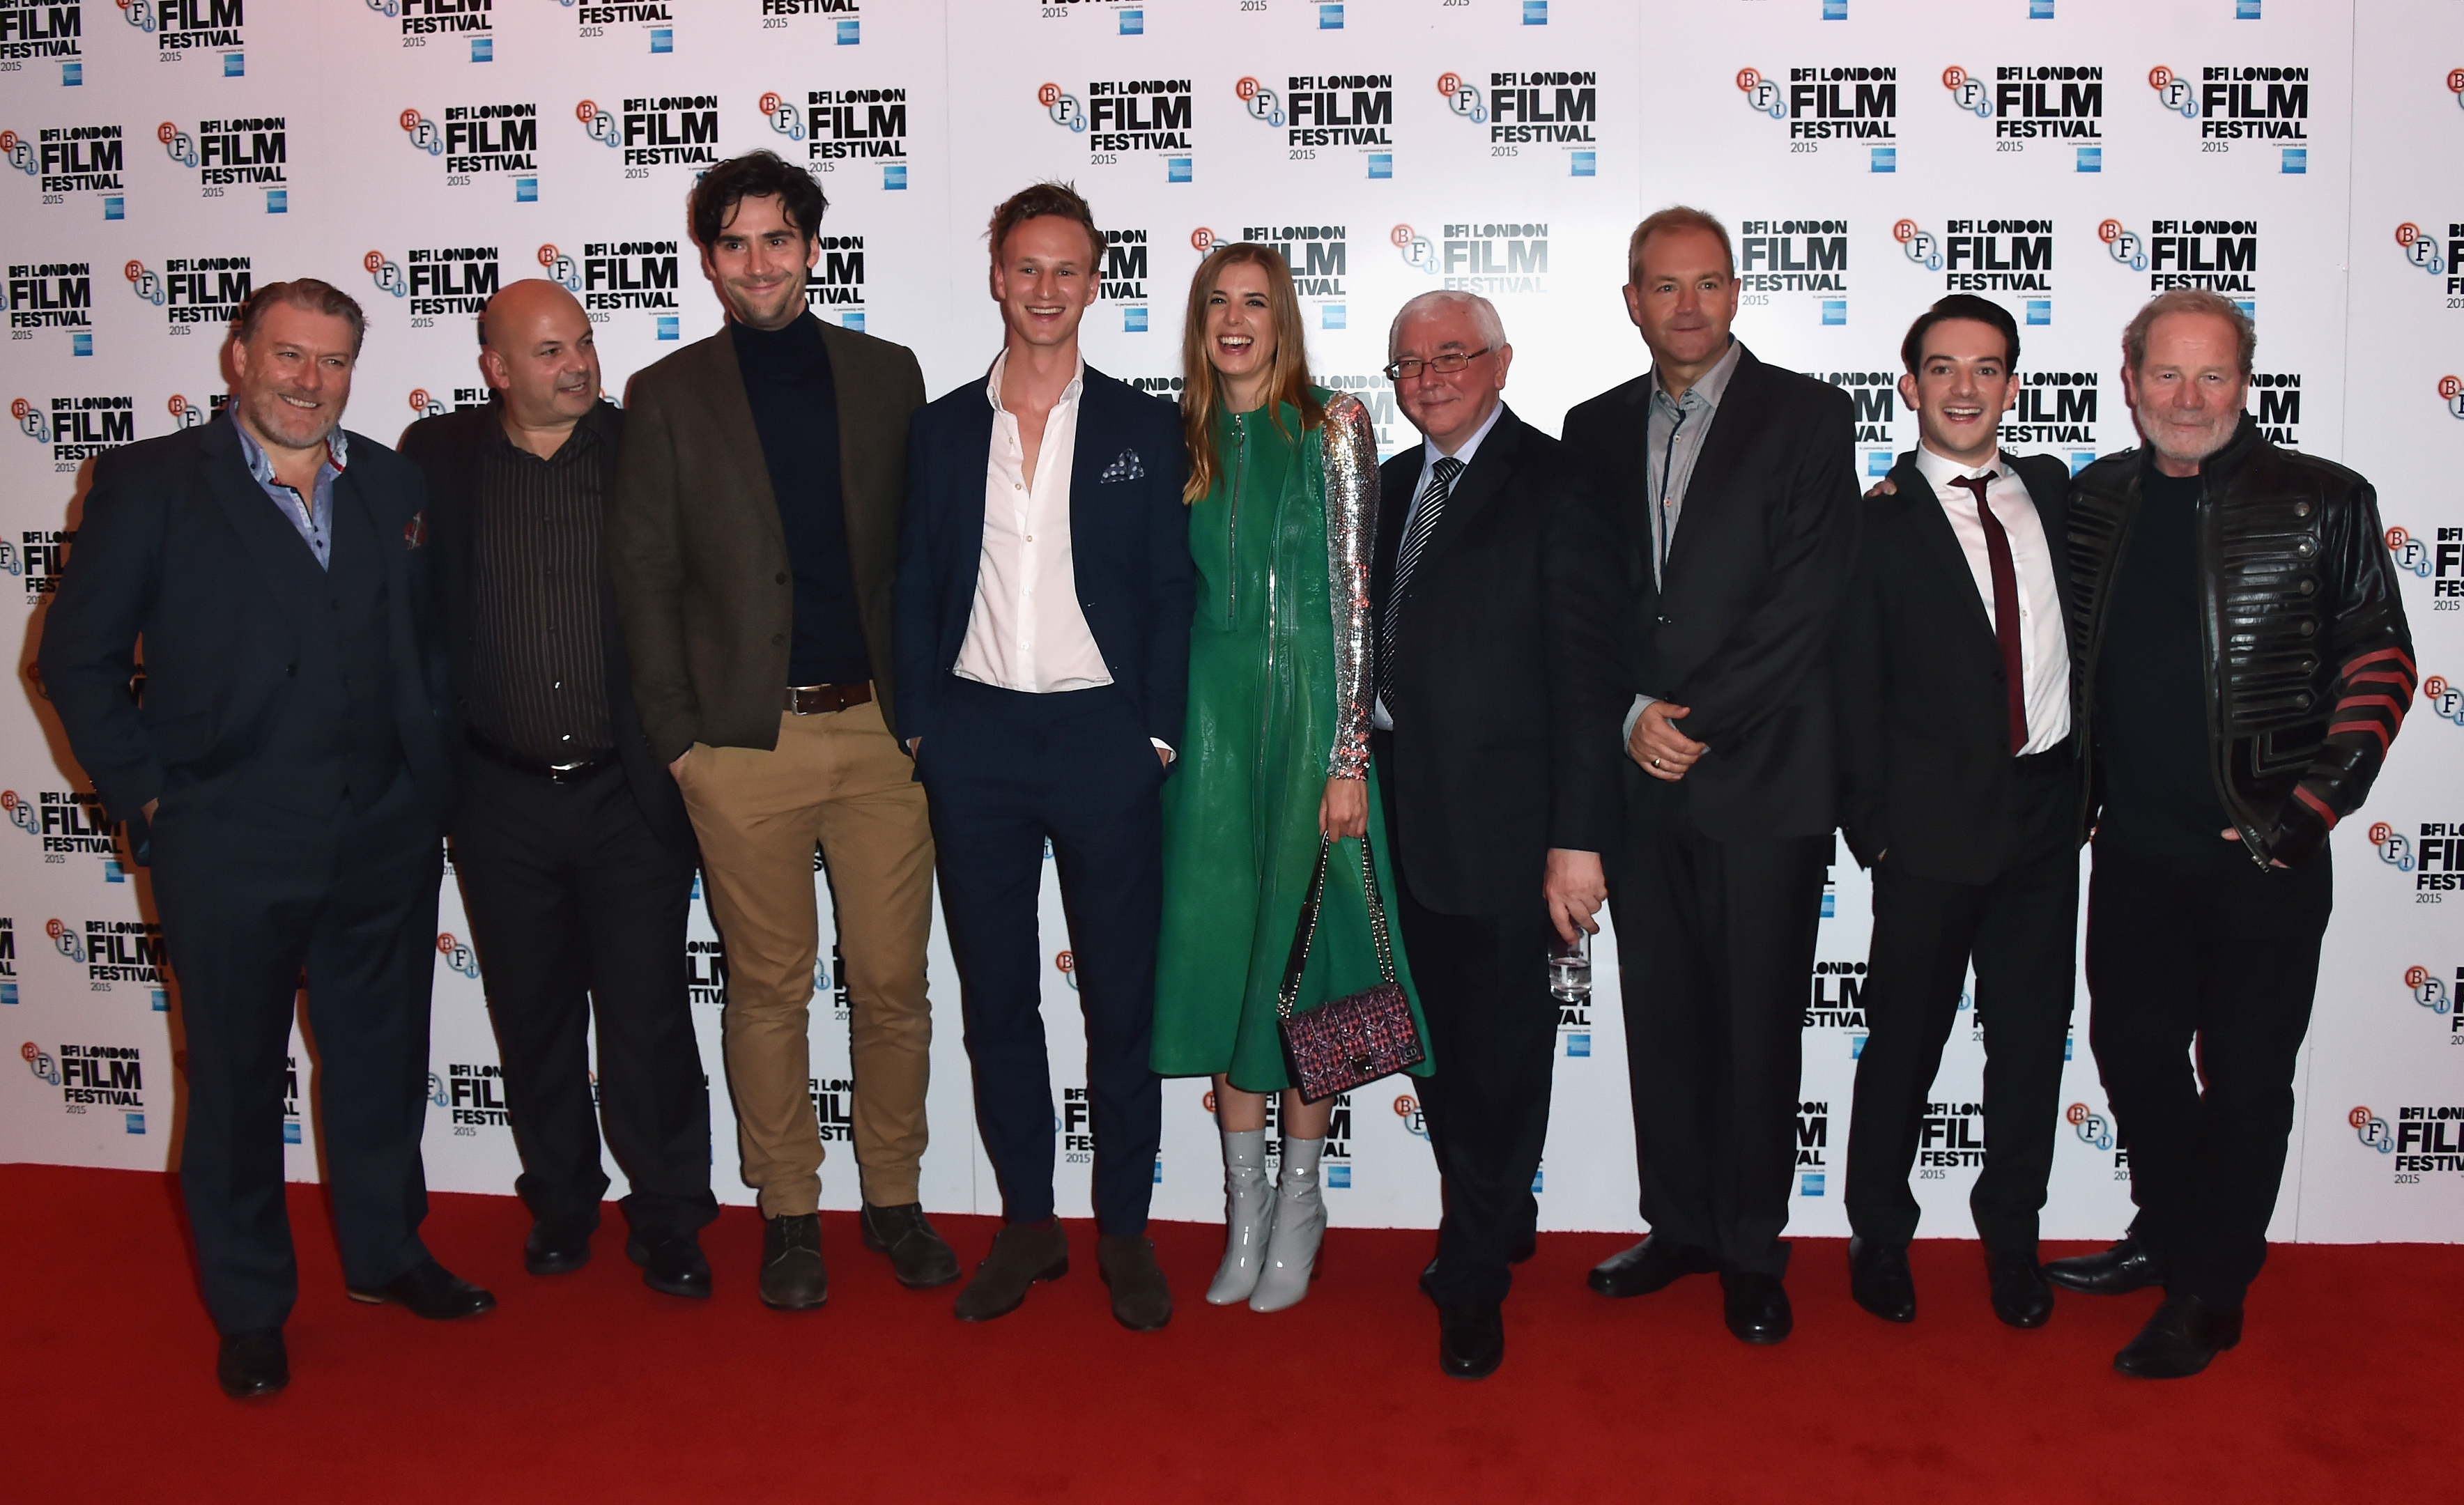 Ian Pirie, Sol Papadopoulos, Jack Greenlees, Agyness Deyn, Terence Davies, Roy Boulter, Kevin Guthrie and Peter Mullan attend the screening of Sunset Song